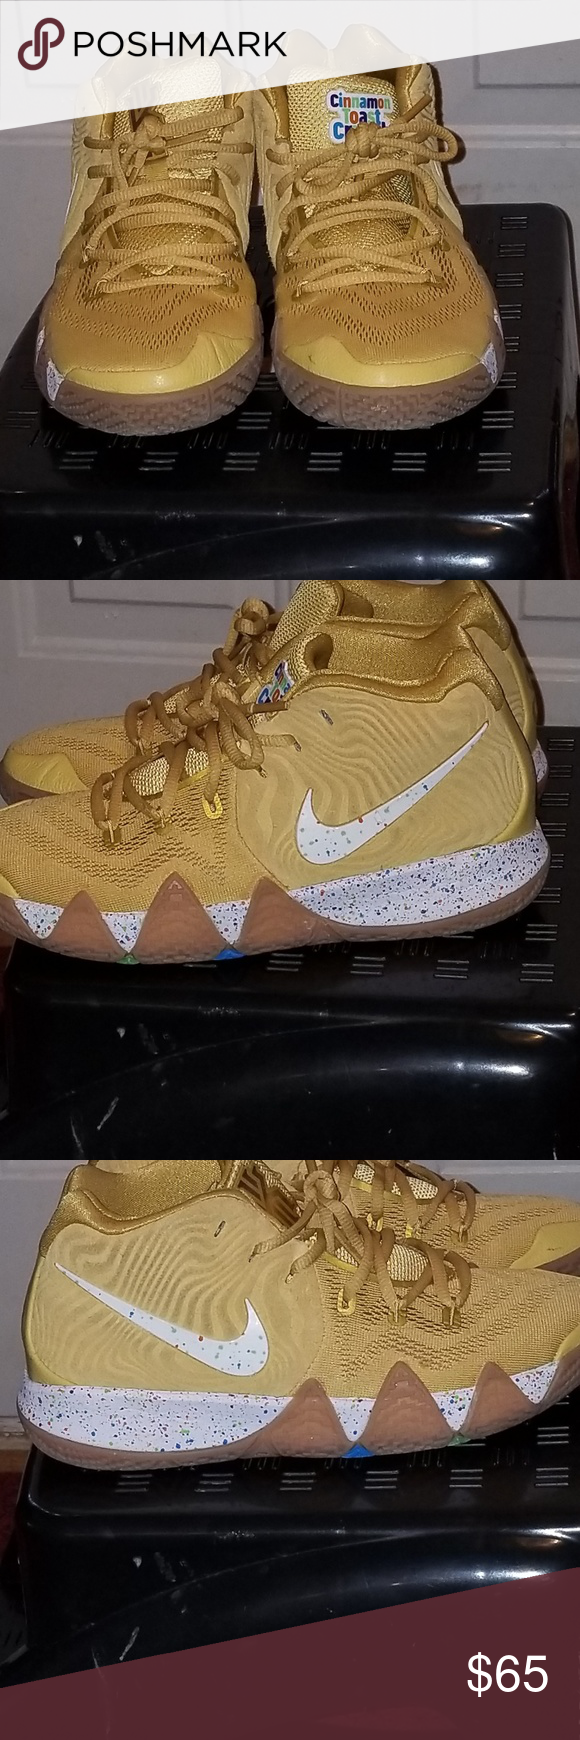 Nike Kyrie Irving Cinnamon Toast Crunch Shoes Kyrie Irving Cinnamon Toast Crunch High Top Nike Shoes Athletic Shoes #cinnamontoastcrunch Nike Kyrie Irving Cinnamon Toast Crunch Shoes Kyrie Irving Cinnamon Toast Crunch High Top Nike Shoes Athletic Shoes #cinnamontoastcrunch